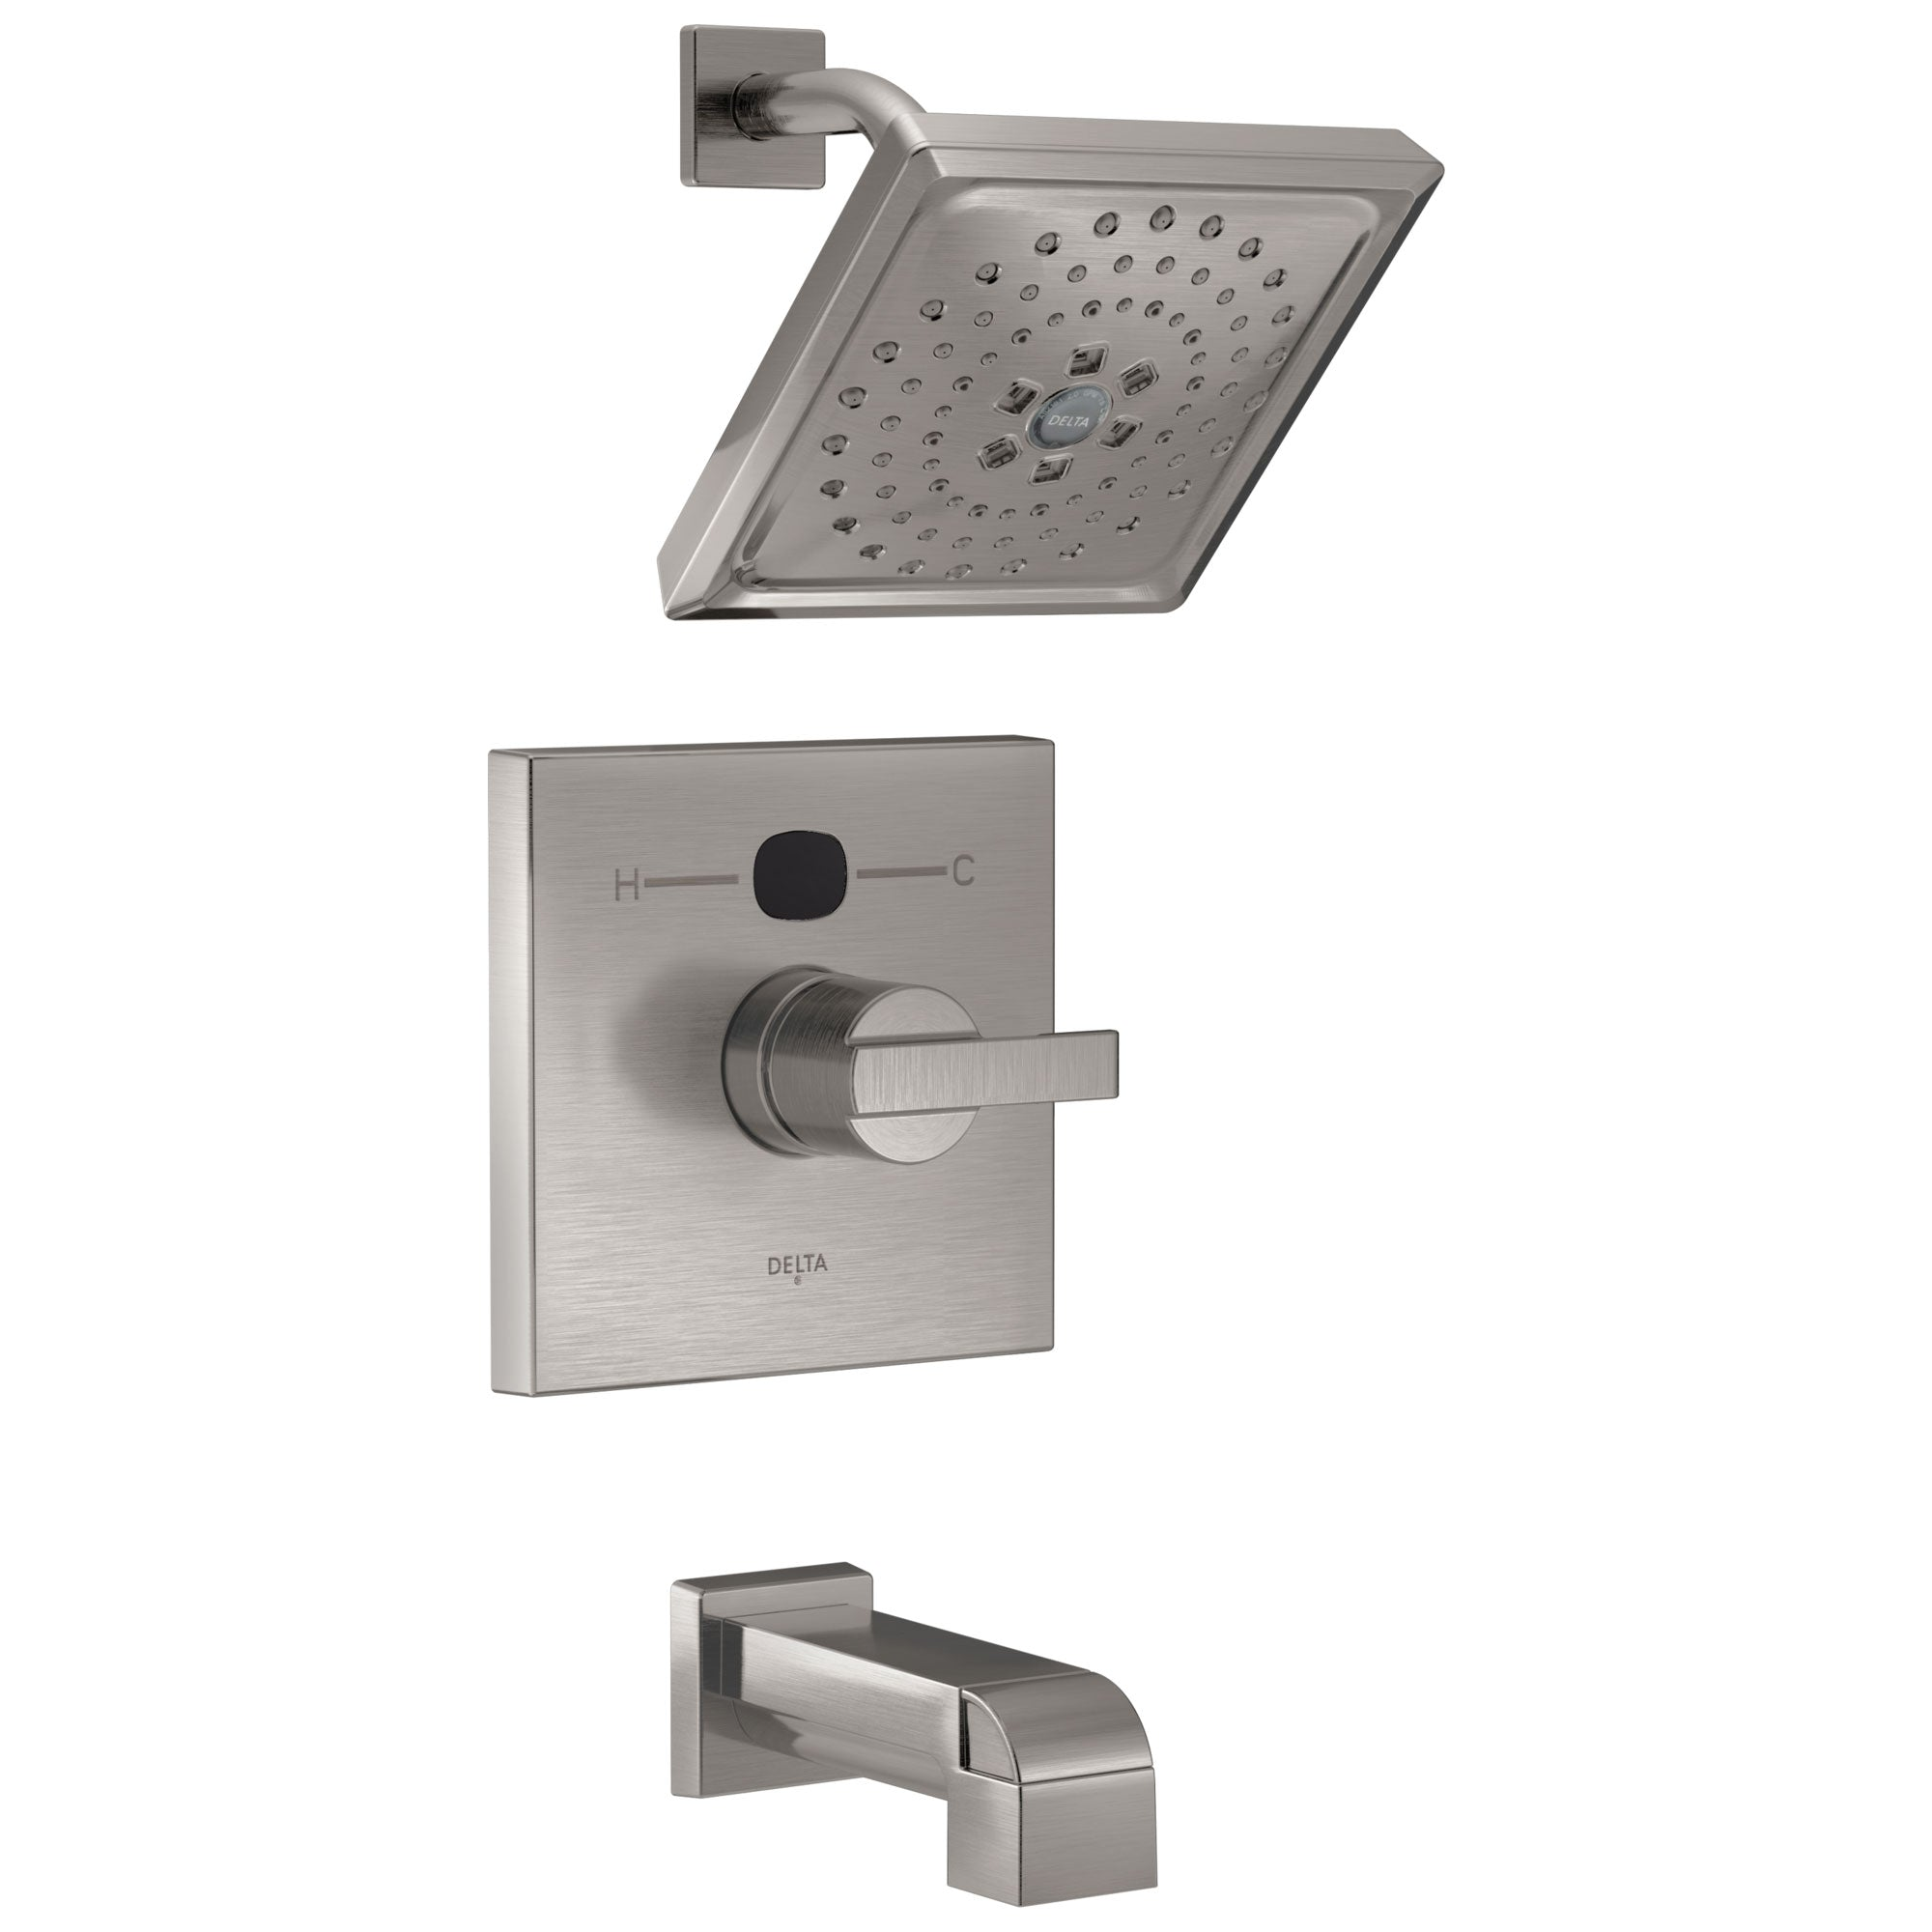 Delta Stainless Steel Finish Ara Modern 14 Series Digital Display Temp2O One Handle Tub and Shower Combination Faucet Includes Valve without Stops D2008V